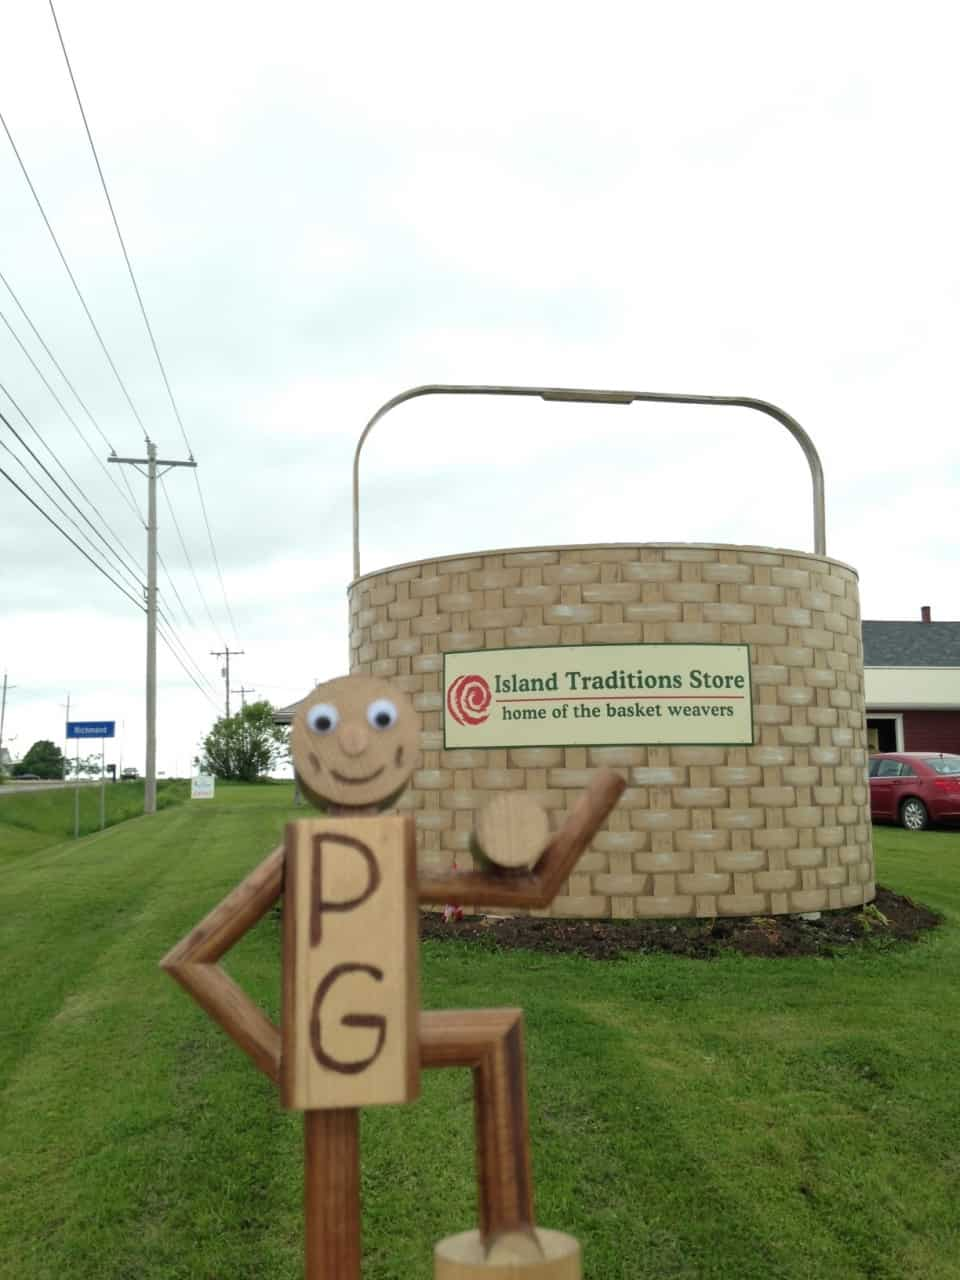 6e4d247e8bf79e2855c9caf8.jpg - Richmond, PEI - Across Canada in search of #BIGselfies trip 2014<br />The worlds largest woven basket, handy for carrying giant potatoes presumably :-D